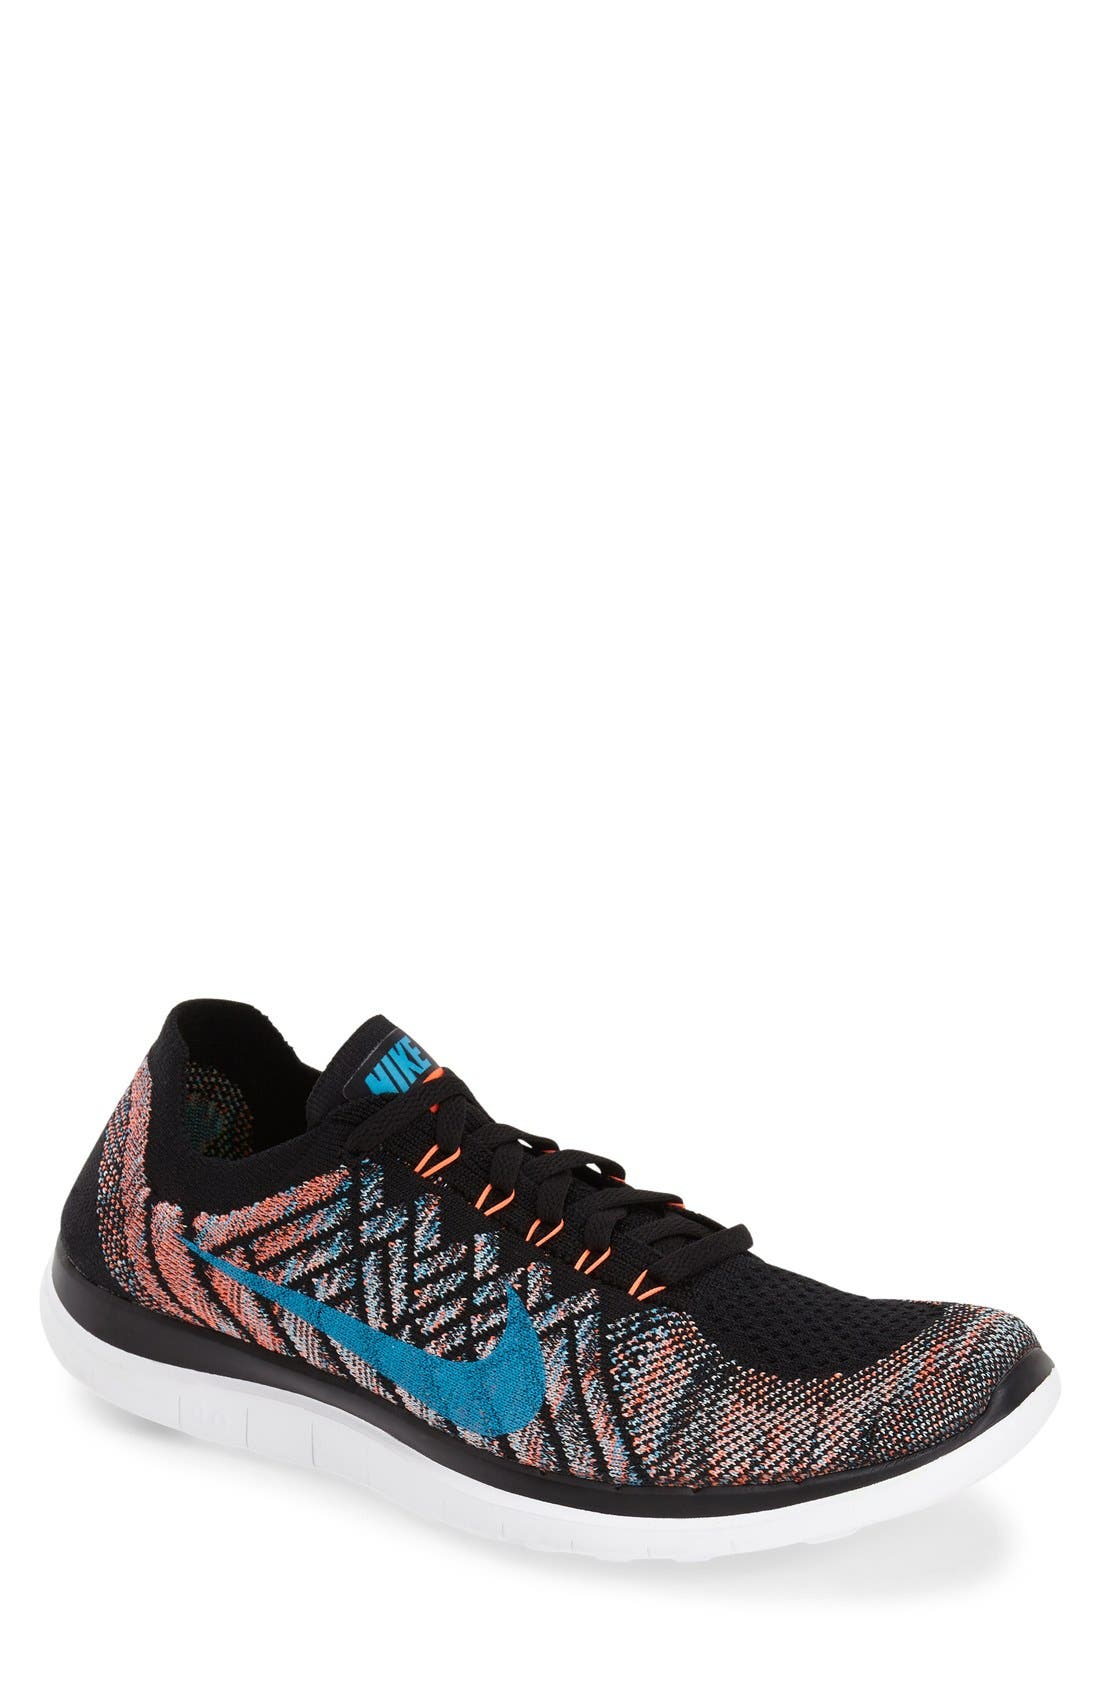 Main Image - Nike 'Free Flyknit 4.0' Running Shoe (Men)